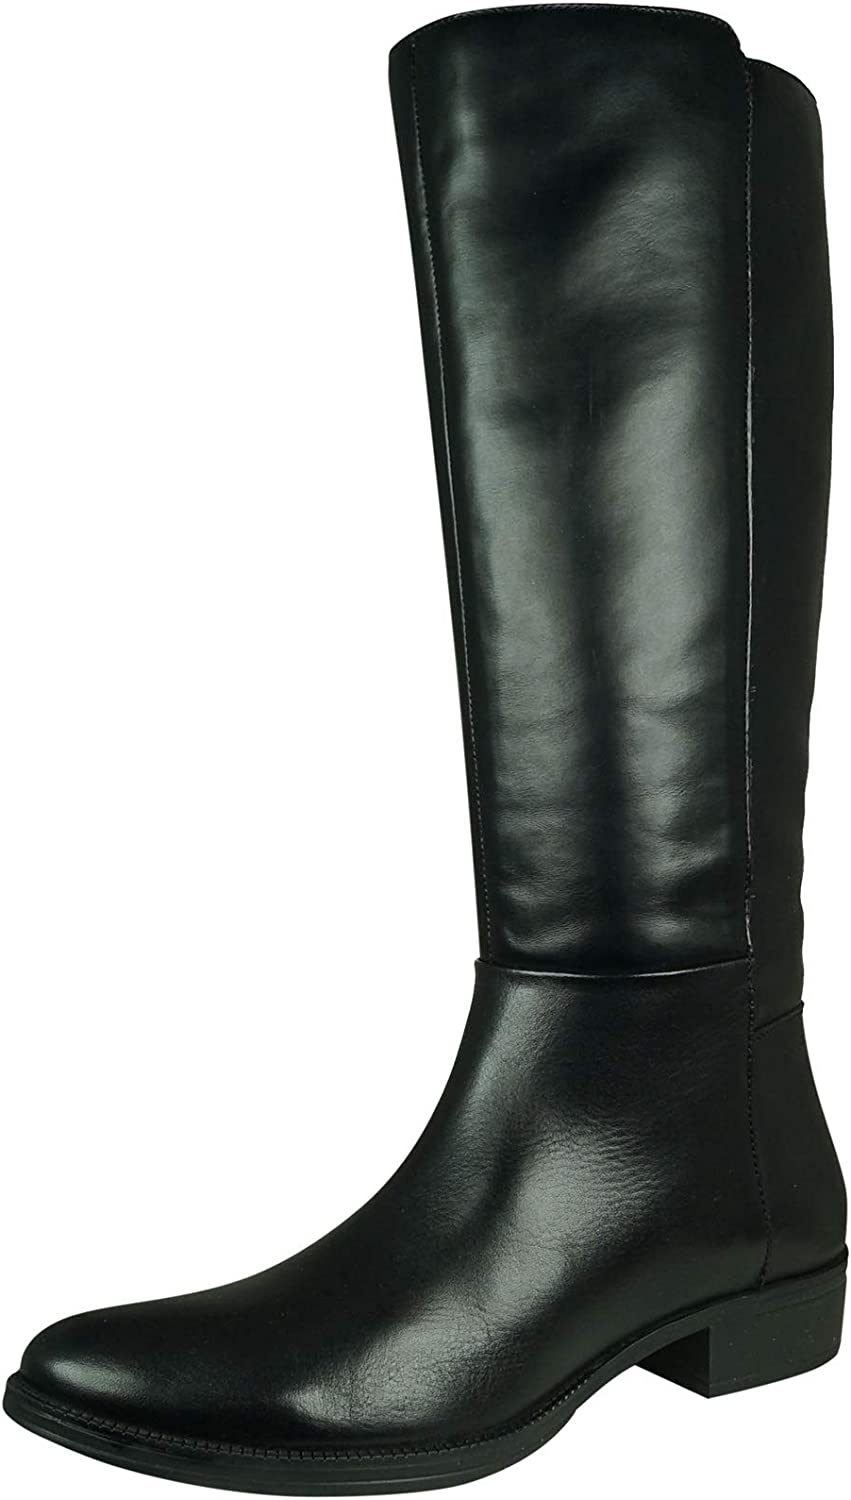 Geox D Laceyin Max 65% OFF C Boots-Black-9 Tall Leather favorite Womens